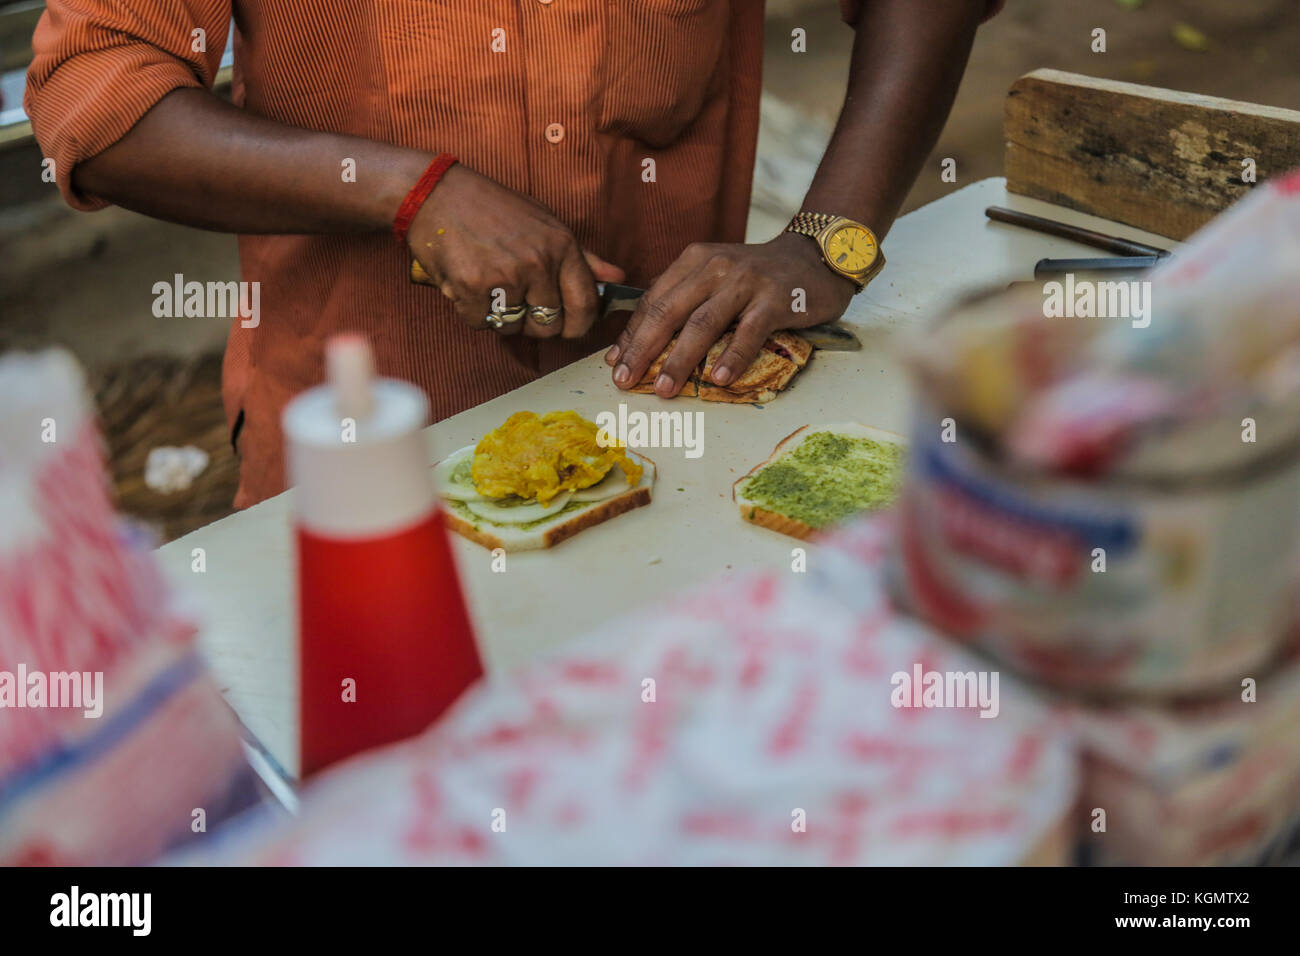 Making sandwich in a food stall in Mumbai, India. - Stock Image